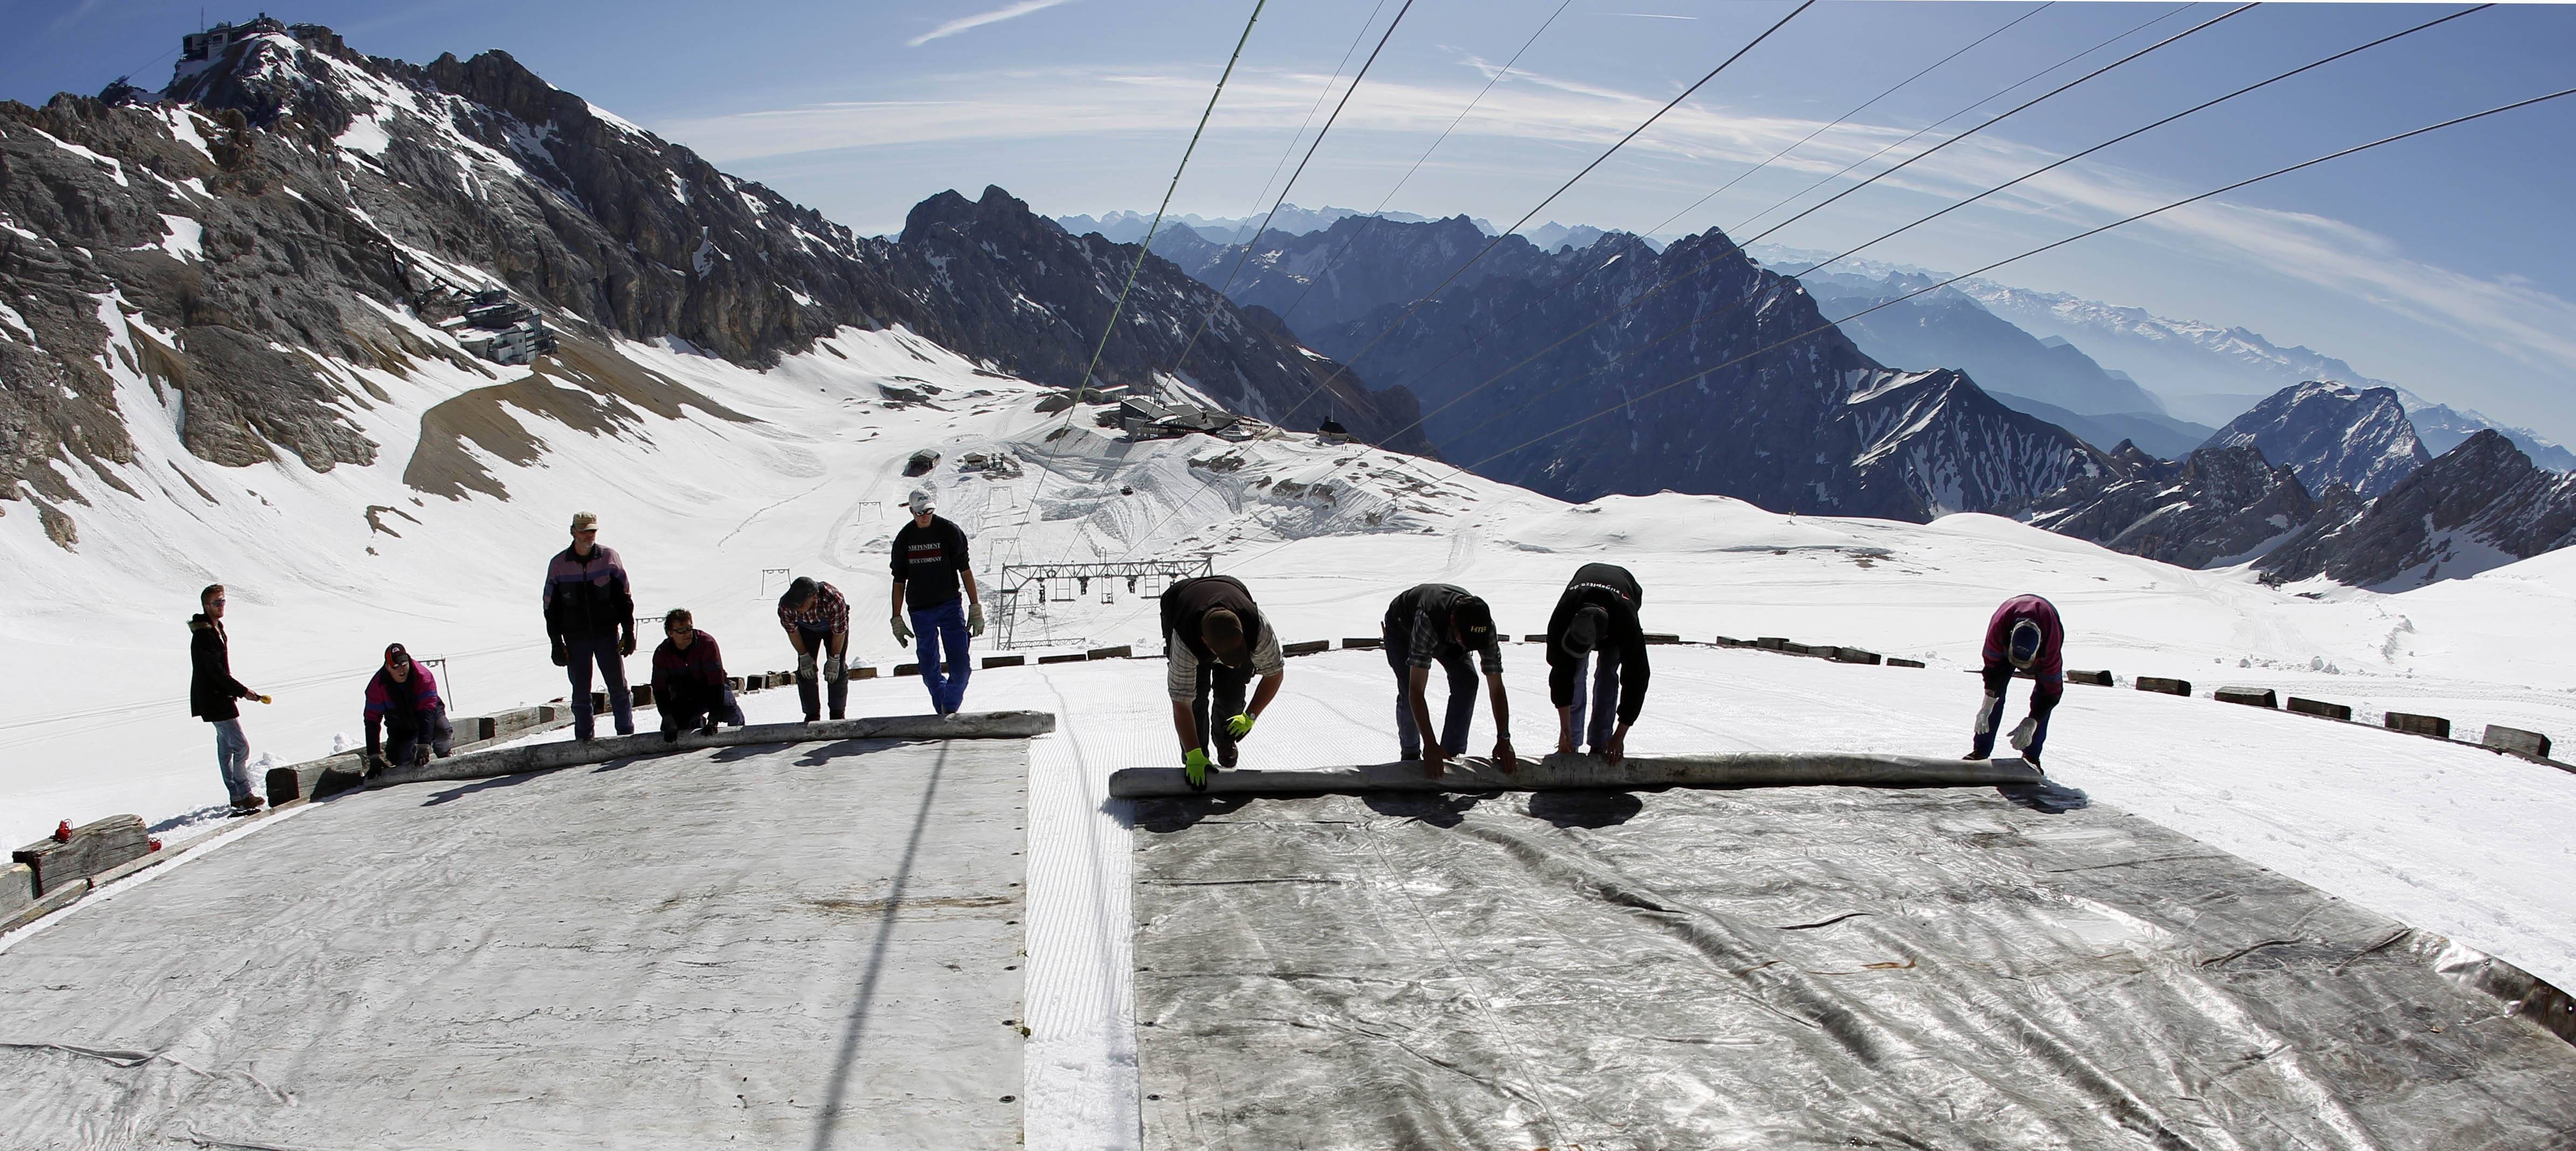 "Workers cover a glacier with oversized plastic sheets on the peak of Germany's highest mountain Zugspitze in this file photo from 2011. The sheets are meant to keep the glacier from melting during the summer months. It's asn example of ""Plan B"" in the fight against climate change."